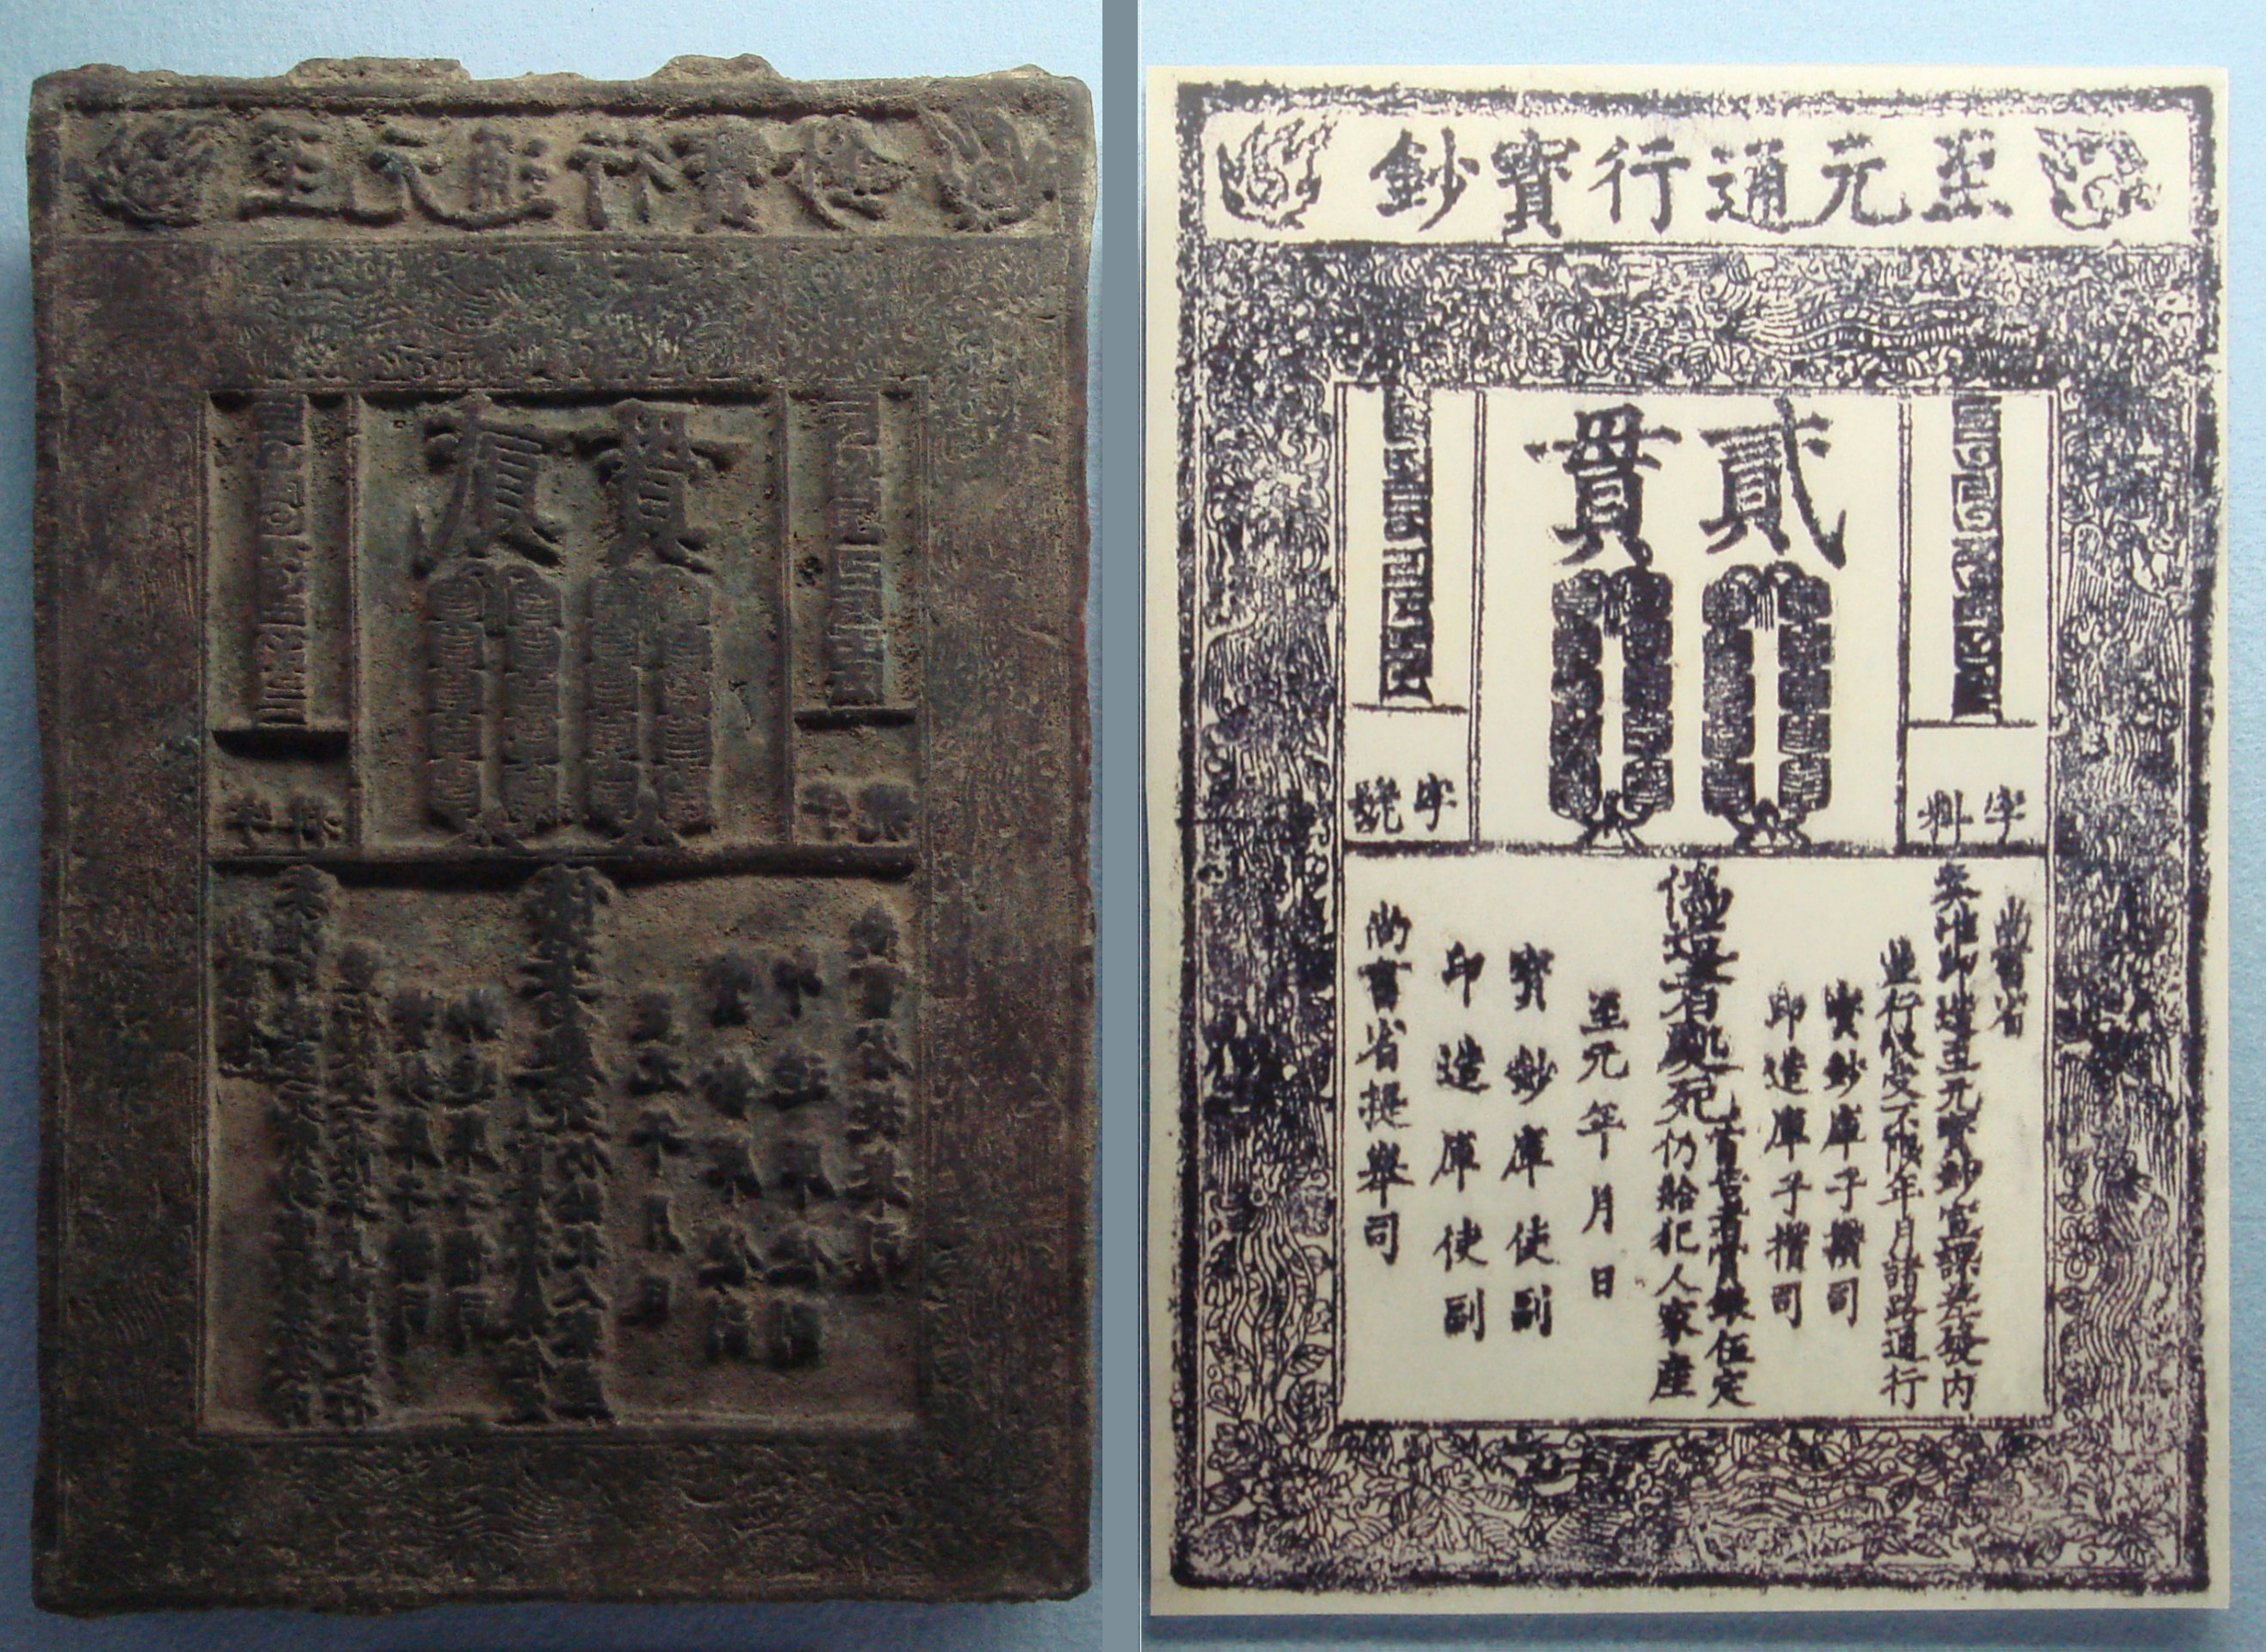 dynasty essay The xia dynasty was the first dynasty in ancient china it was thought to be a myth chinese used as a part of there history actually the xia dynasty was very real.